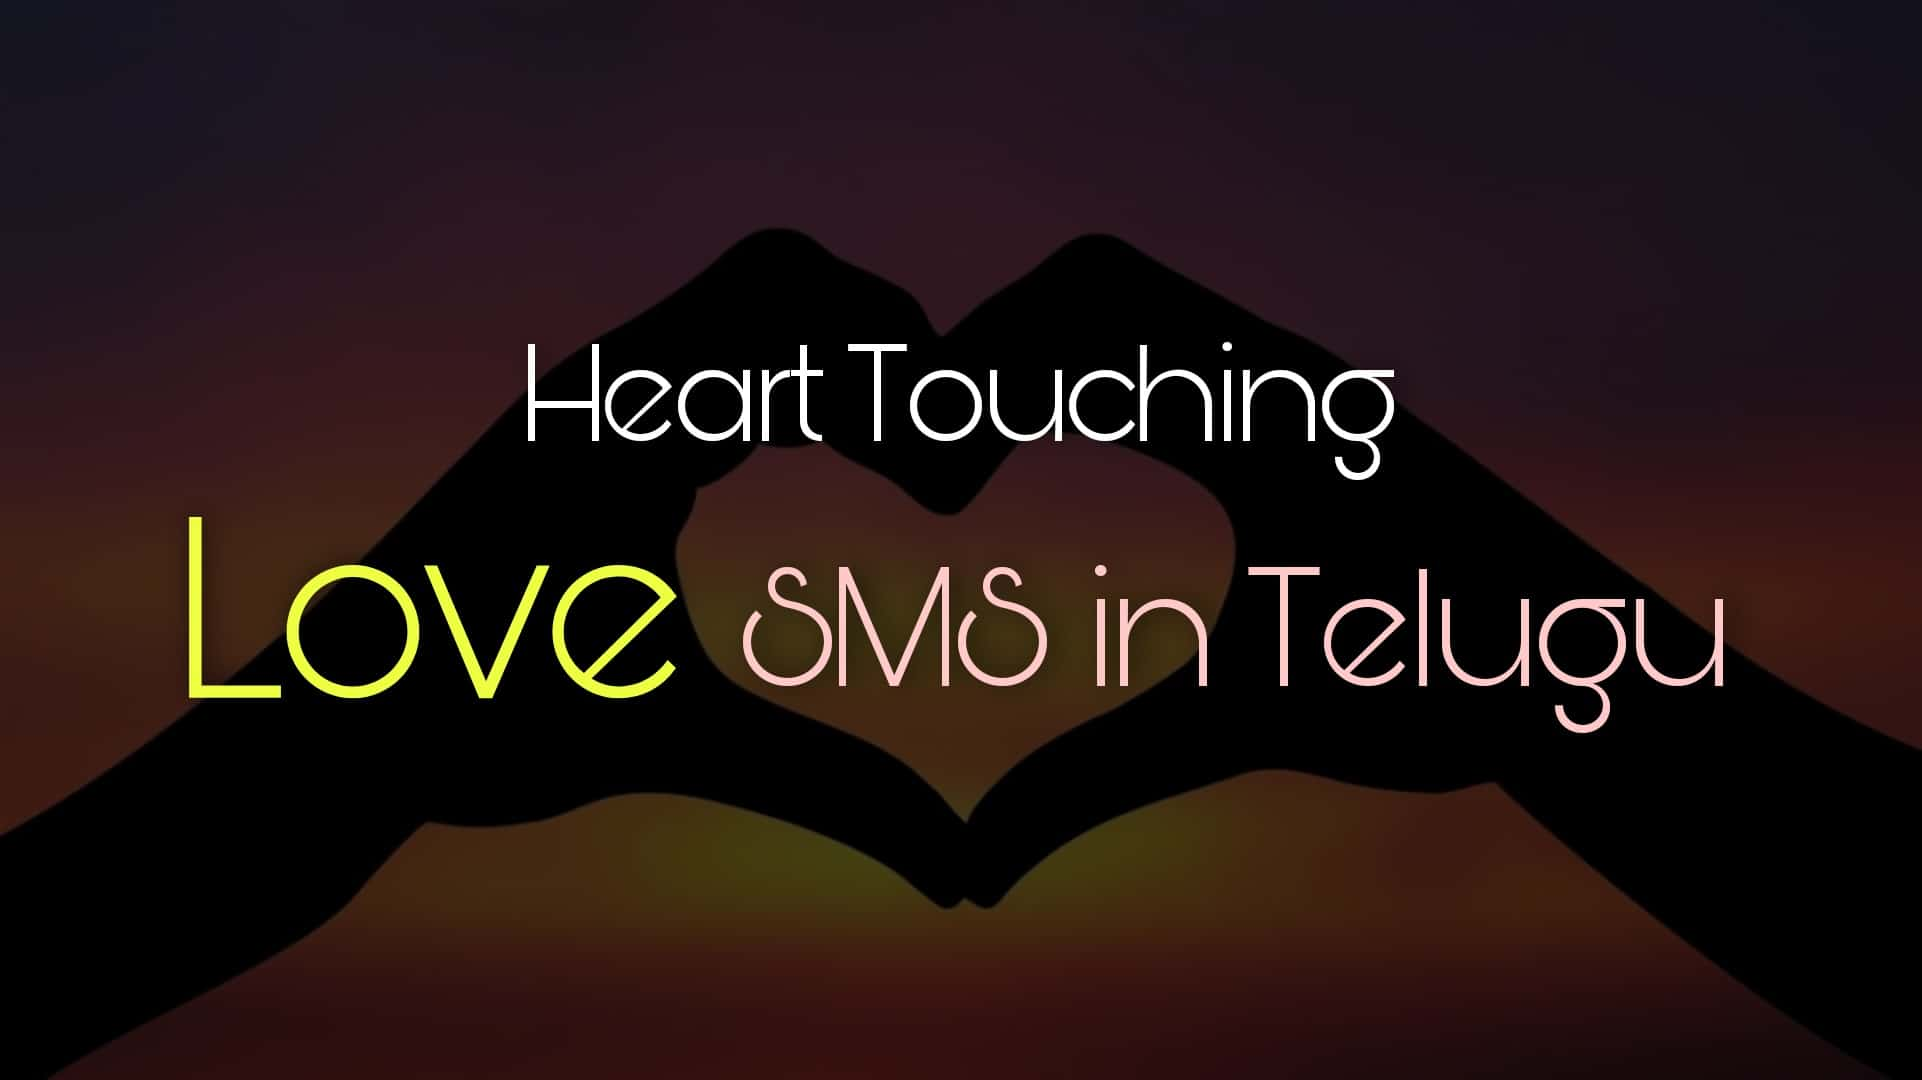 Best Heart Touching Love SMS in Telugu   Love Quotes, Text Messages, Proposal SMS in Telugu